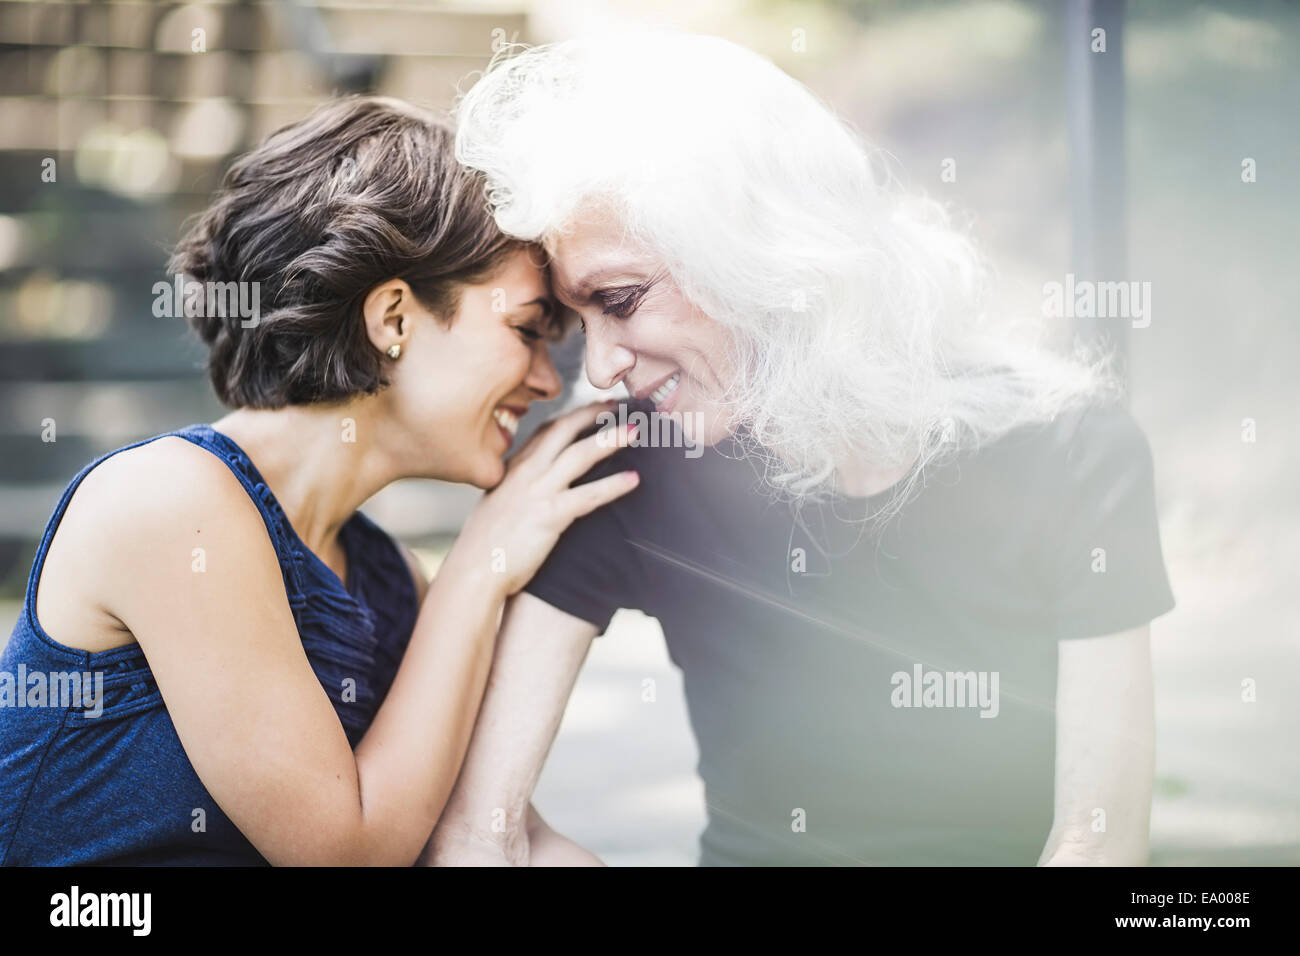 Young woman sharing tender moment with mentor - Stock Image